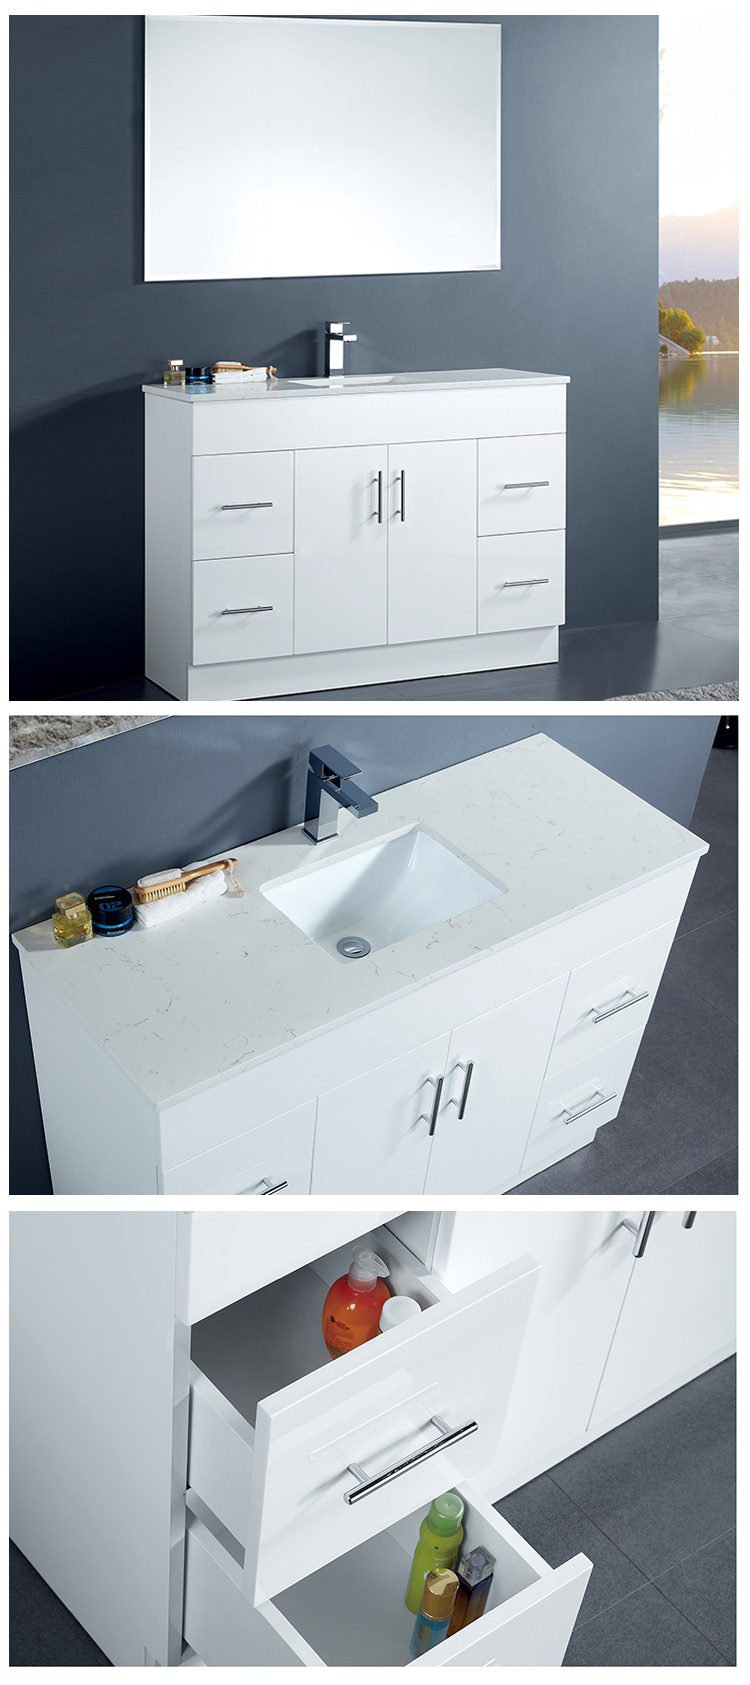 Luxury Bathroom Vanity With Washing Basin Bathroom Sink And Cabinet Combo Laundry Cabinet